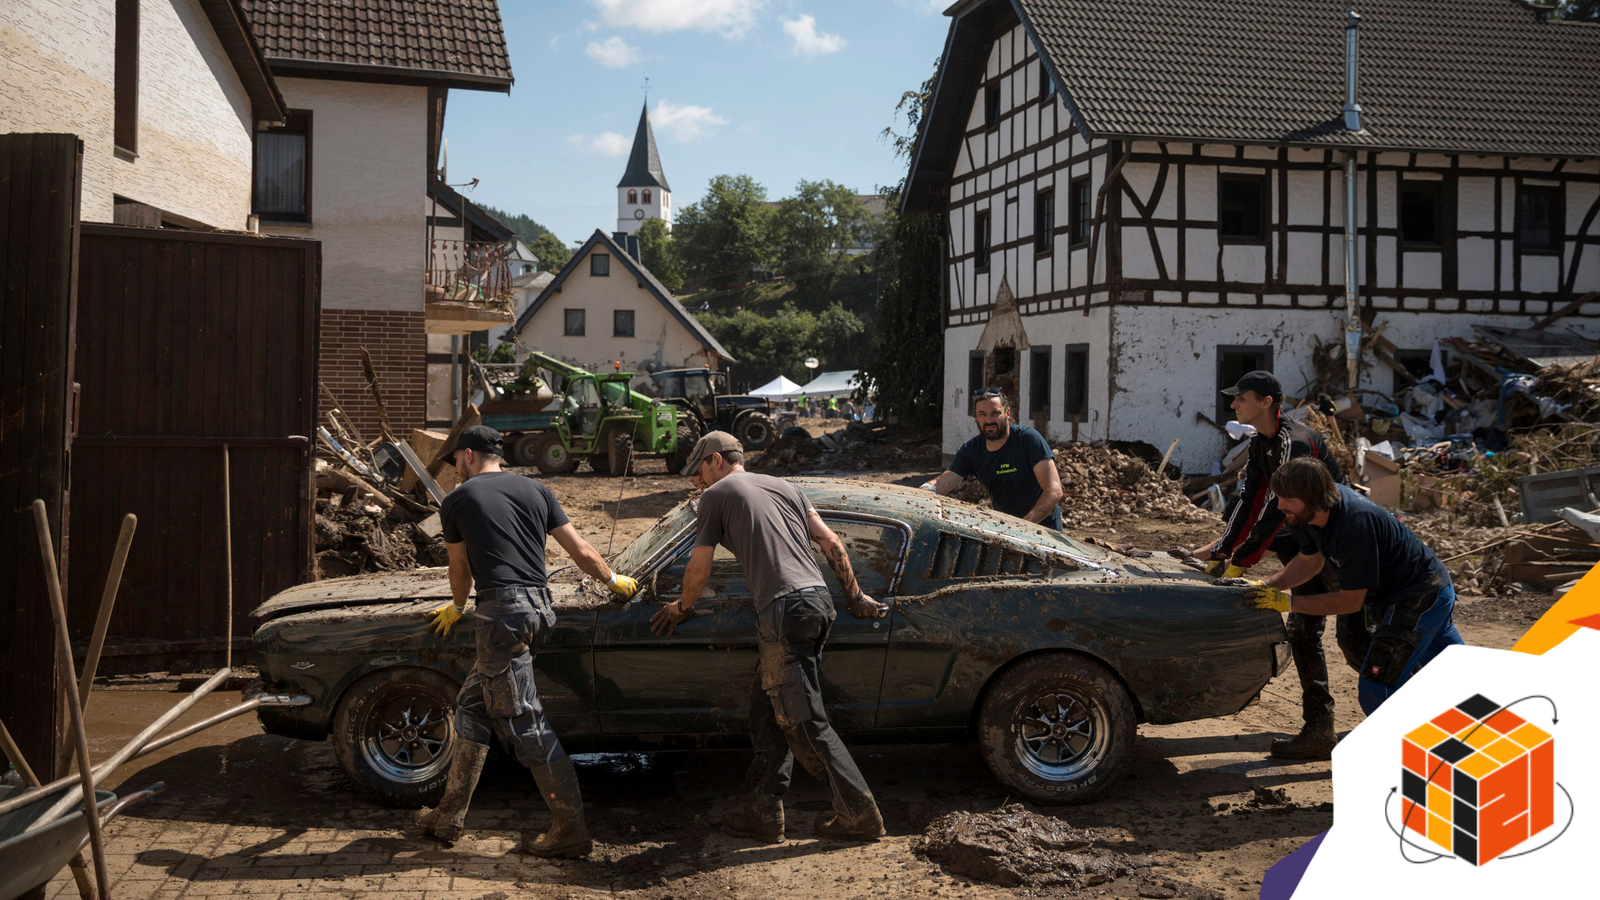 Men help move a car damaged by flooding in Schuld, Germany, July 18, 2021. (Gordon Welters/The New York Times)